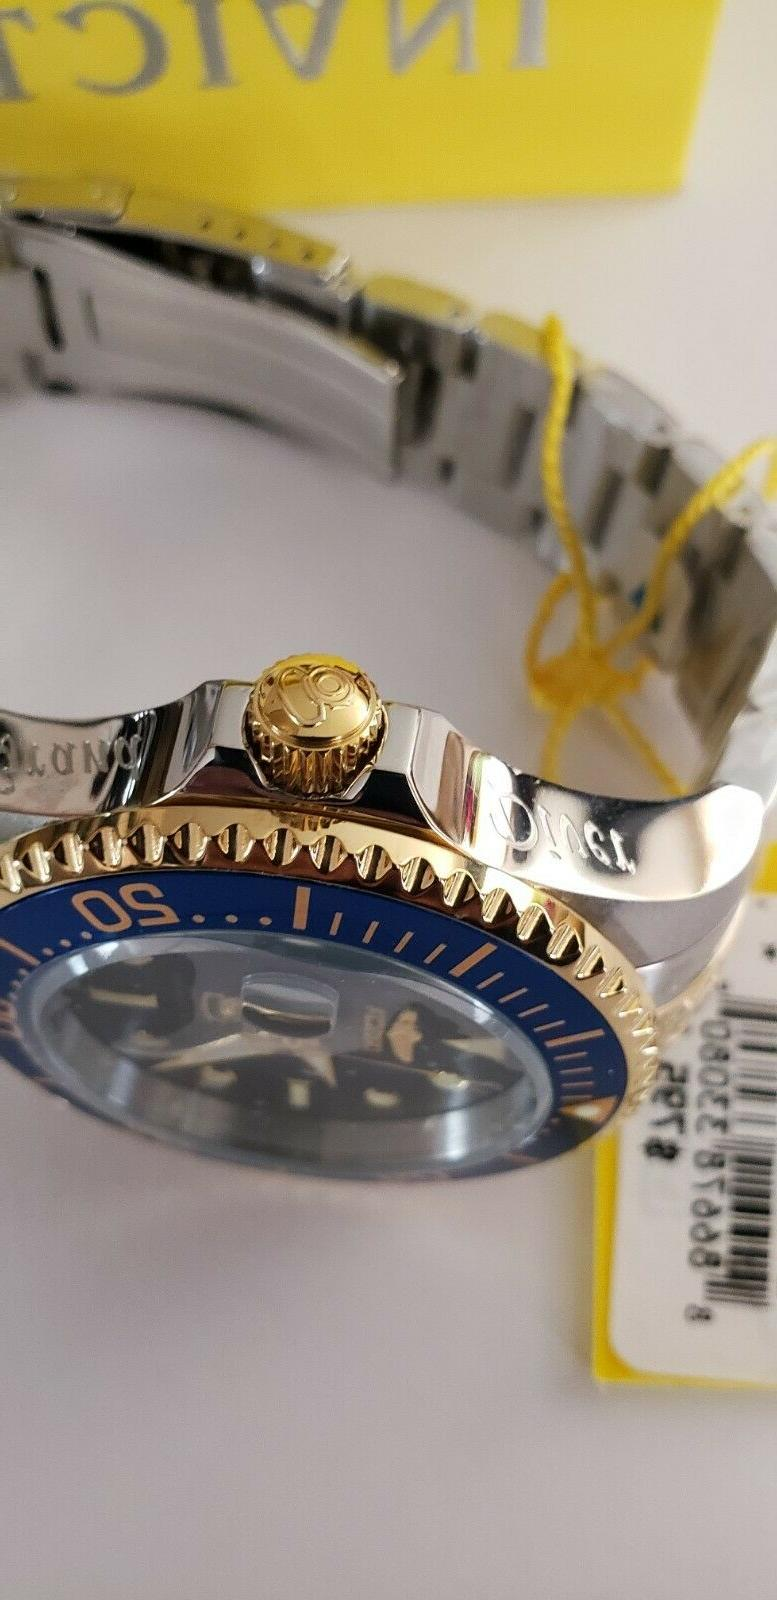 Invicta Men's Diver Tone Blue Dial Gold SS Watch